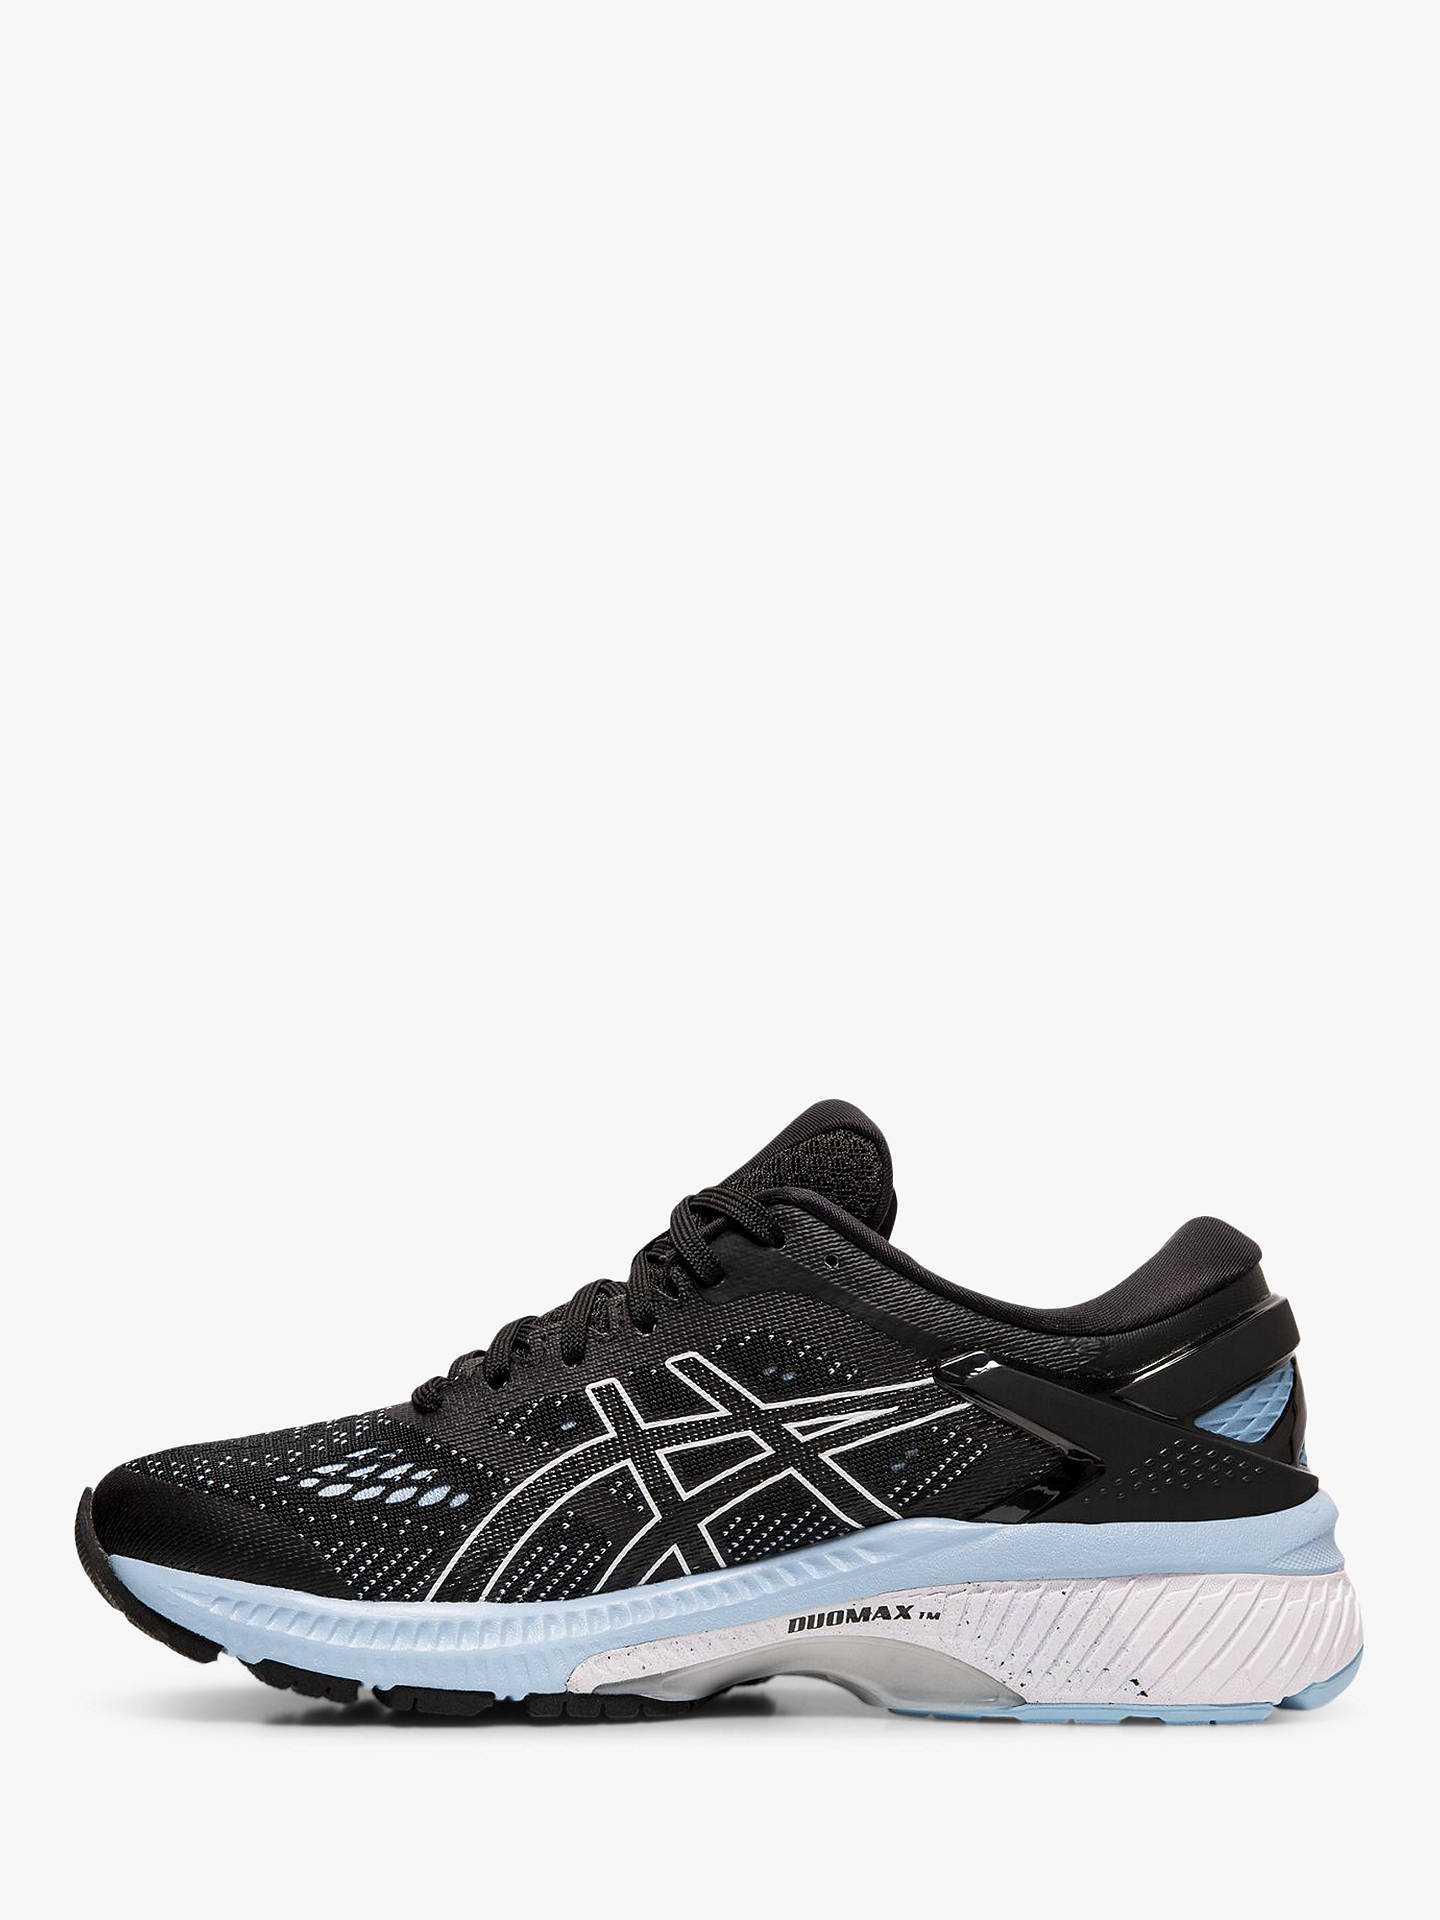 finest selection c5b5a 7a720 ASICS GEL-KAYANO 26 Women's Running Shoes, Black/Heritage Blue